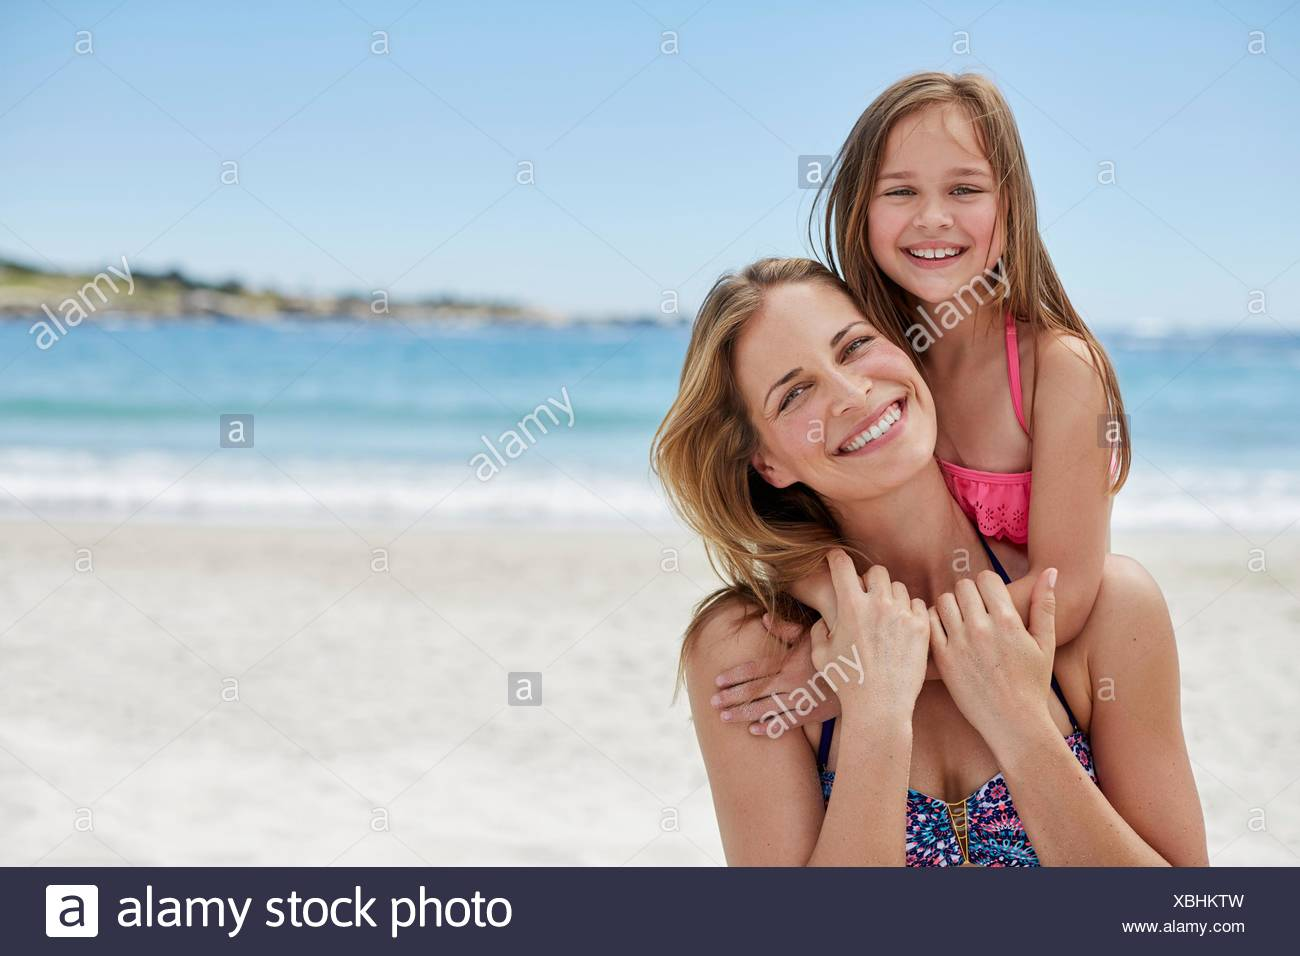 MODEL RELEASED. Mother carrying daughter on her back, portrait. - Stock Image